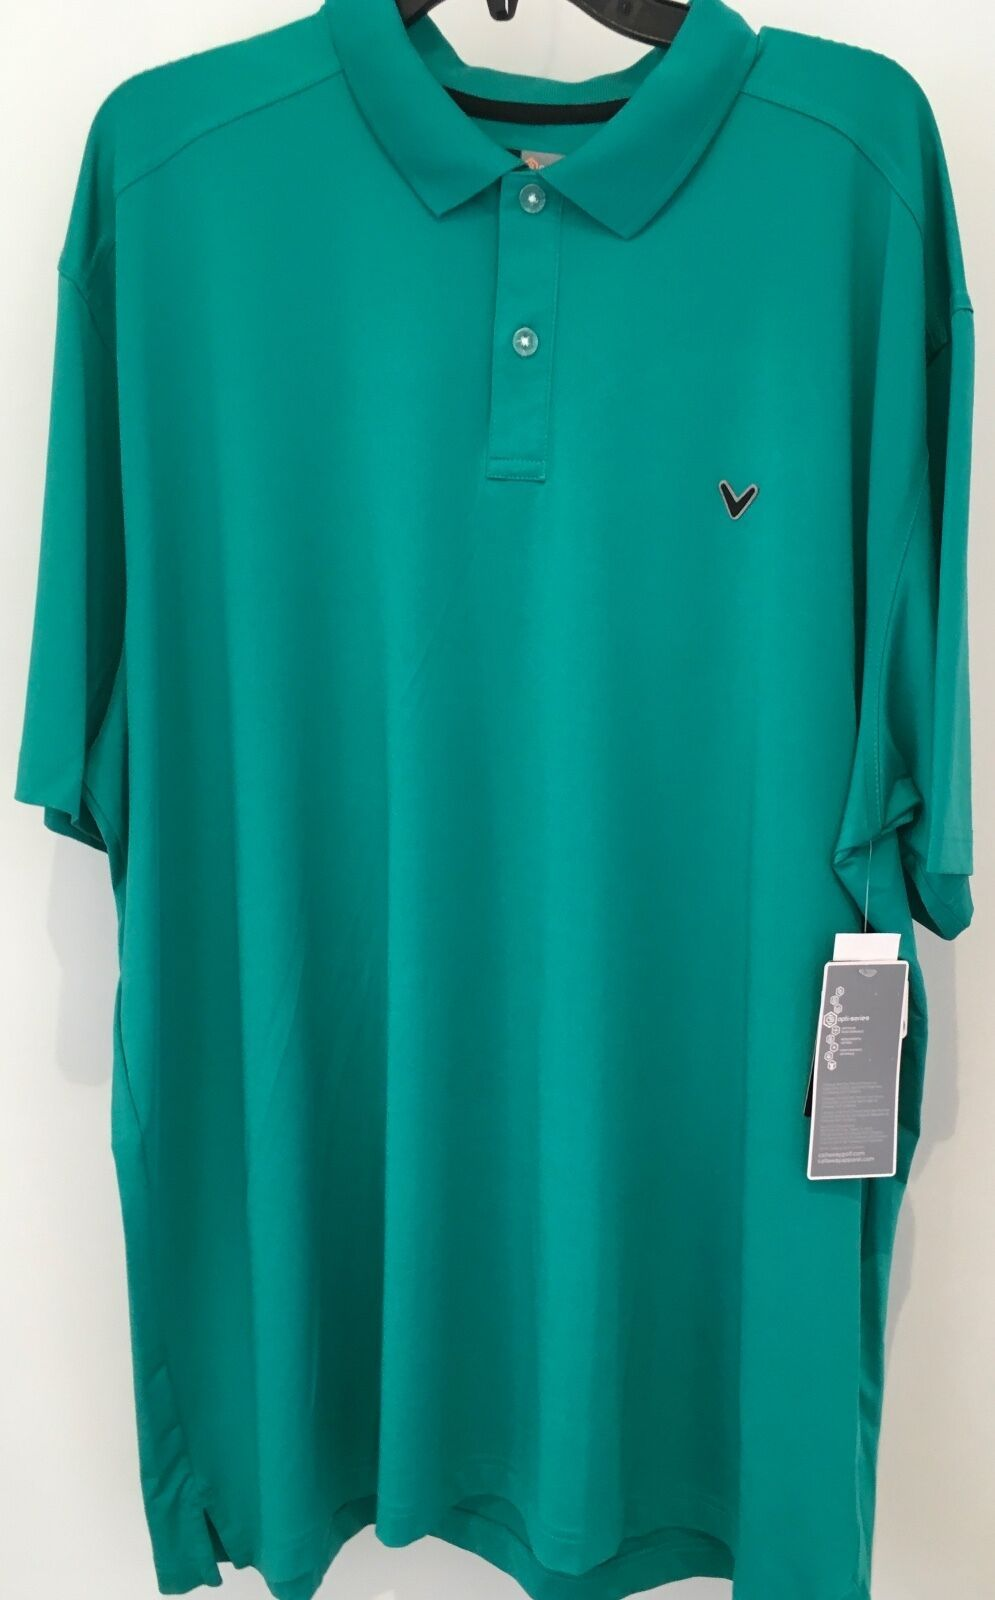 Primary image for  Callaway Opti-Dri Performance Mens Golf Polo Shirt Green XXL NWT